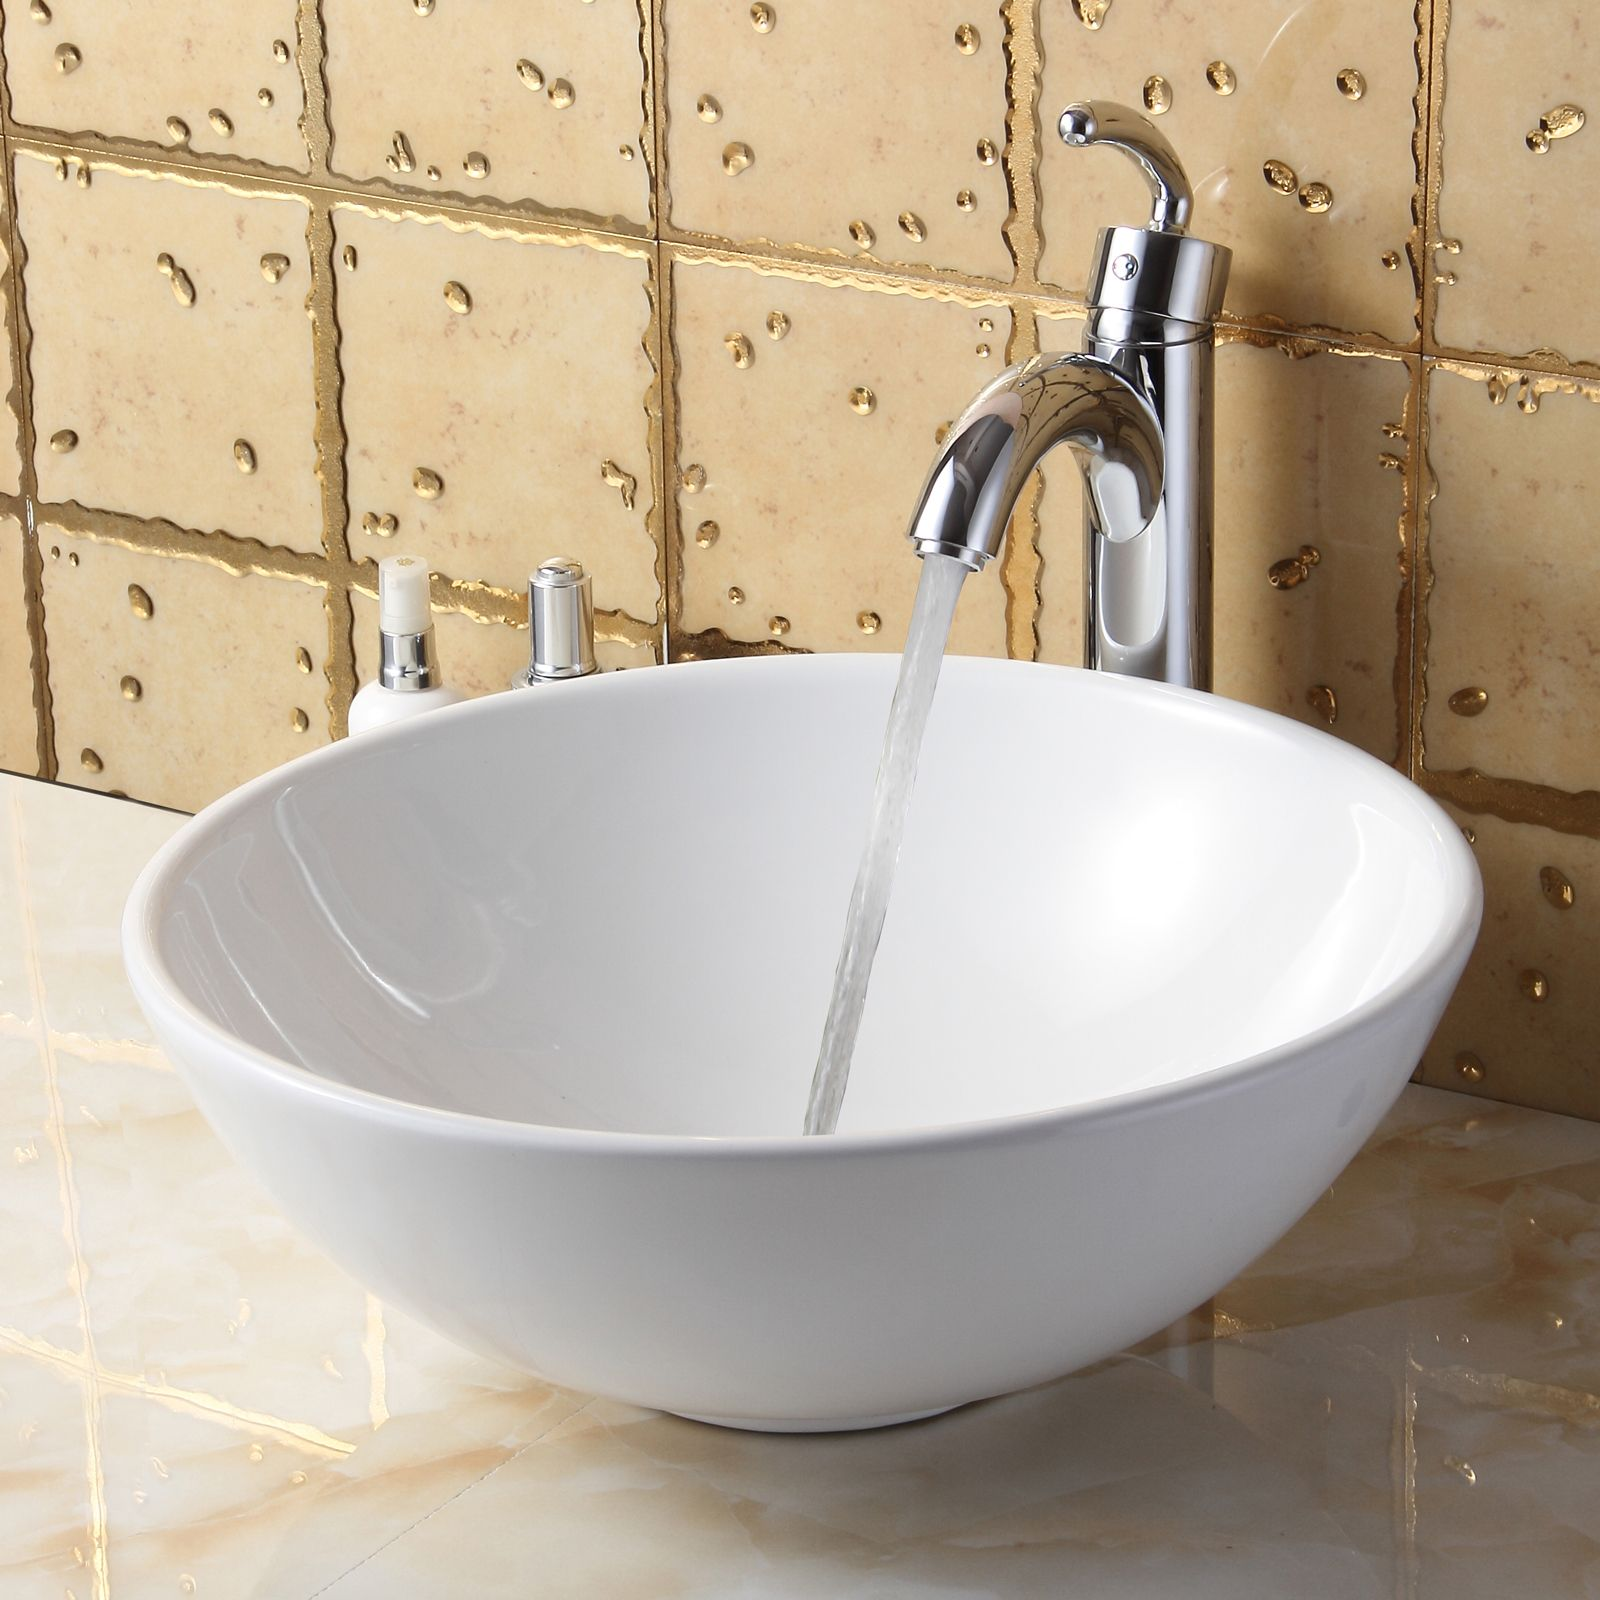 Enhance the style and functionality of your bathroom with ...